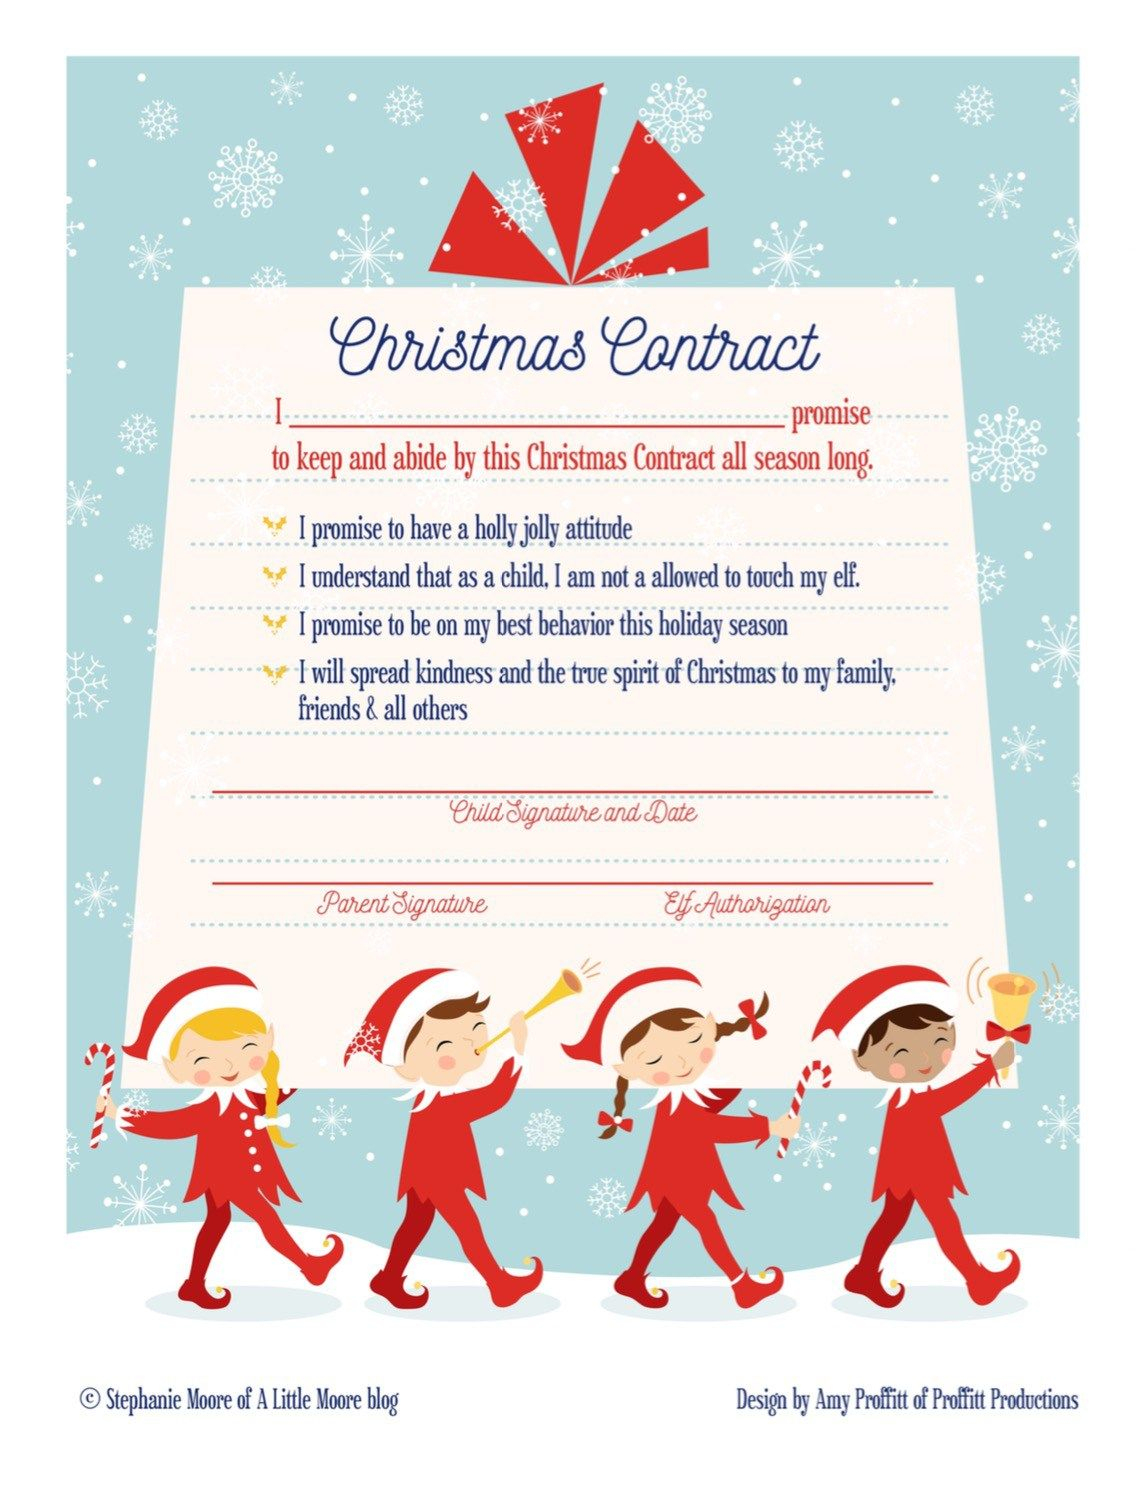 Elf On The Shelf Ideas For Arrival: 10 Free Printables | A-Crafting - Free Printable Elf On Shelf Arrival Letter